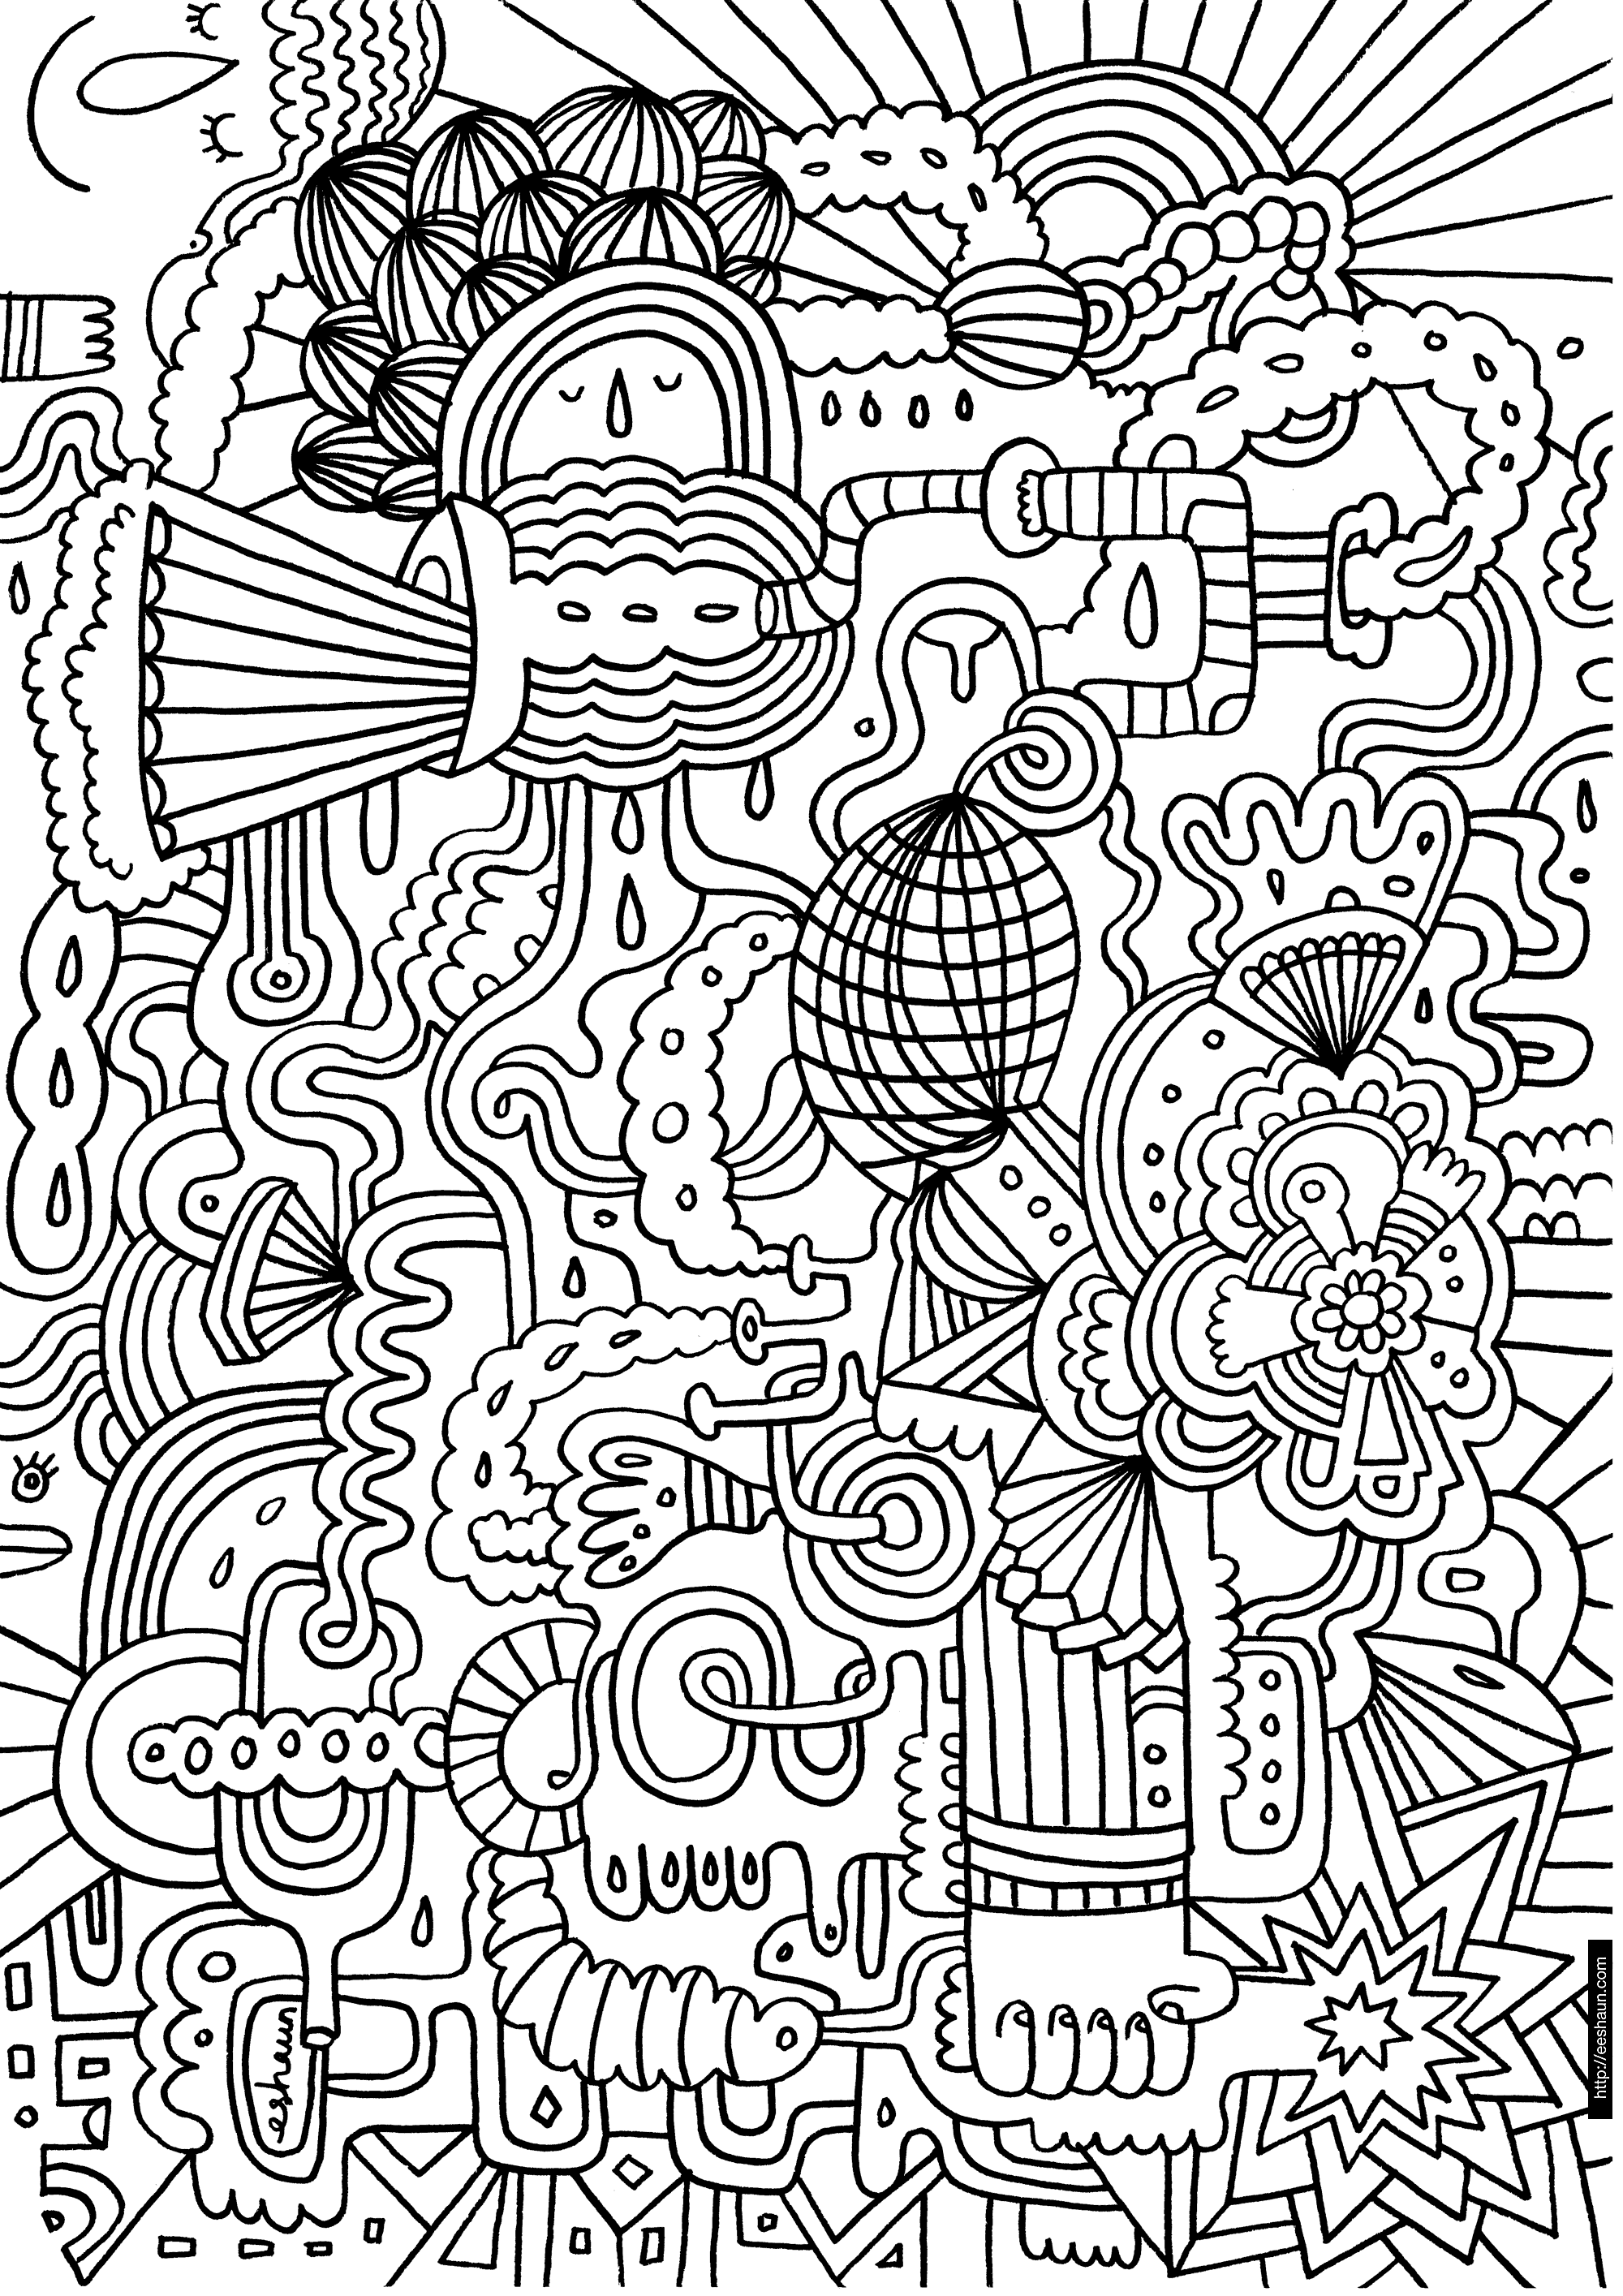 pattern colouring pages don39t eat the paste rainbow coloring page colouring pages pattern